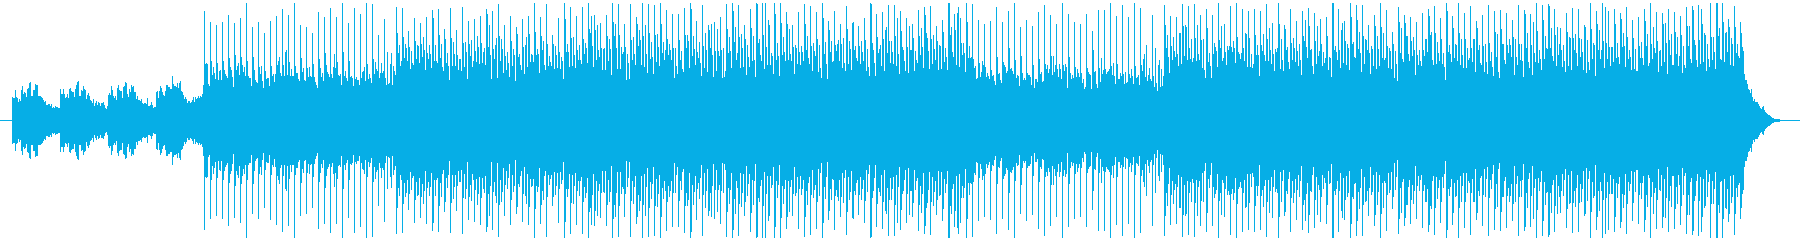 Run To Win's reproduced waveform